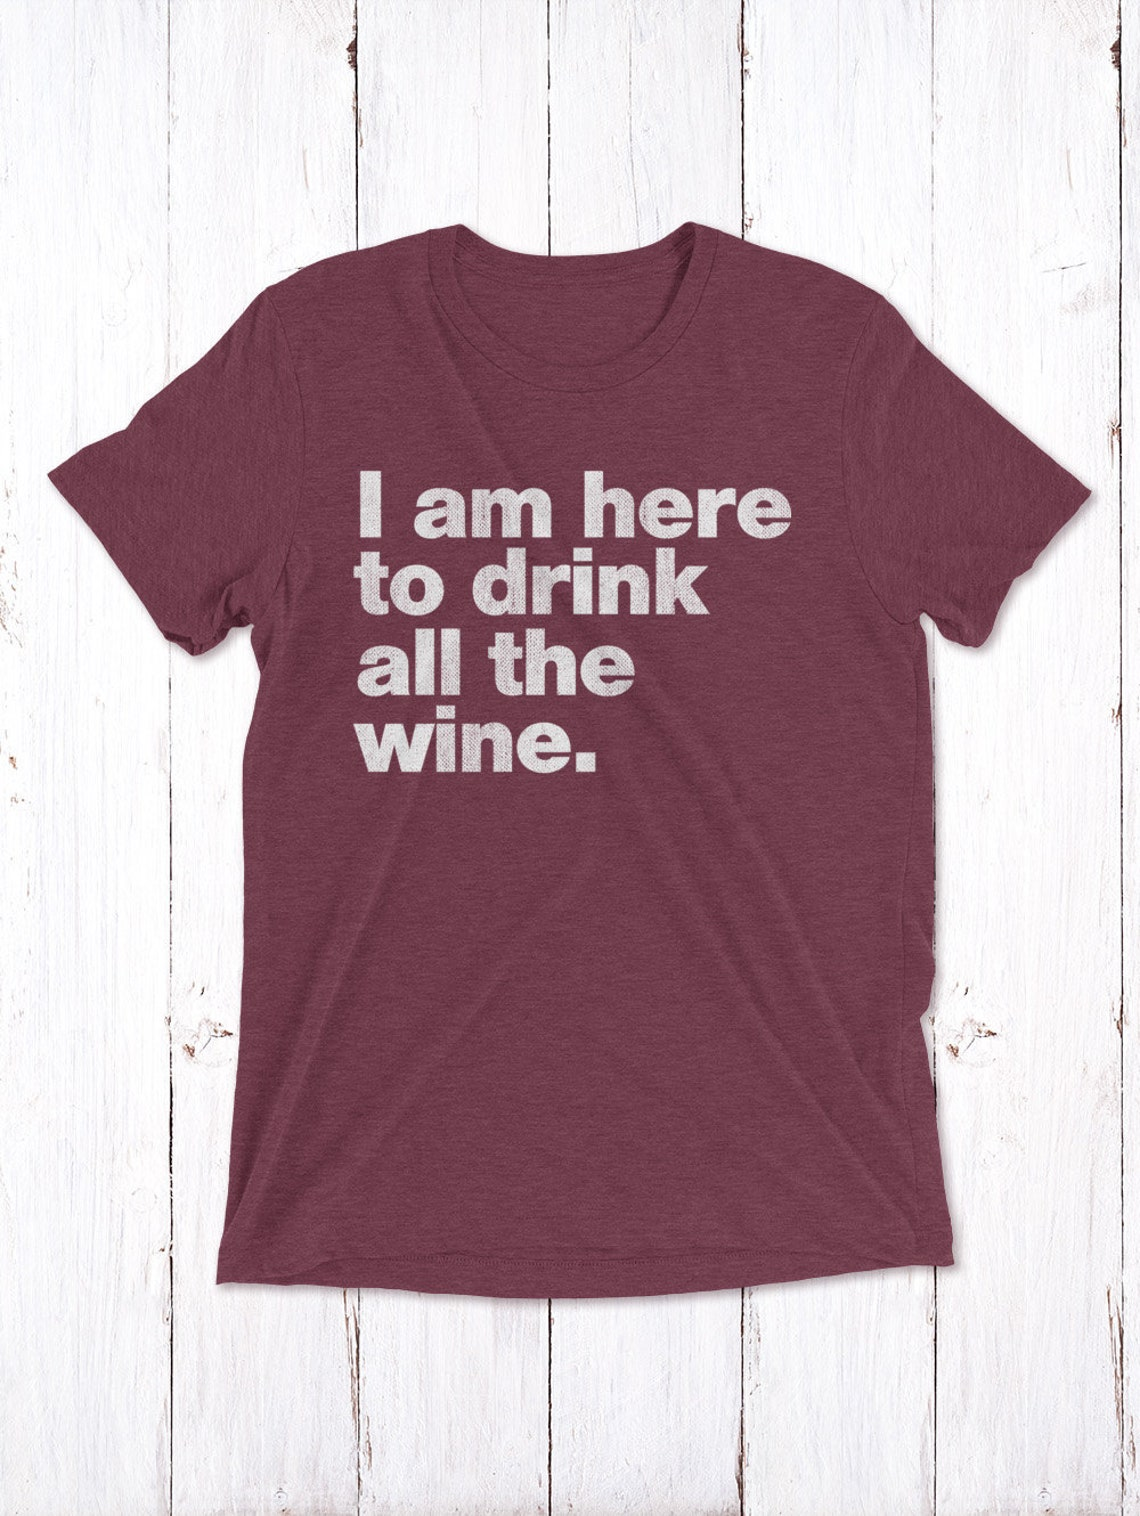 I am here to drink all the wine shirt